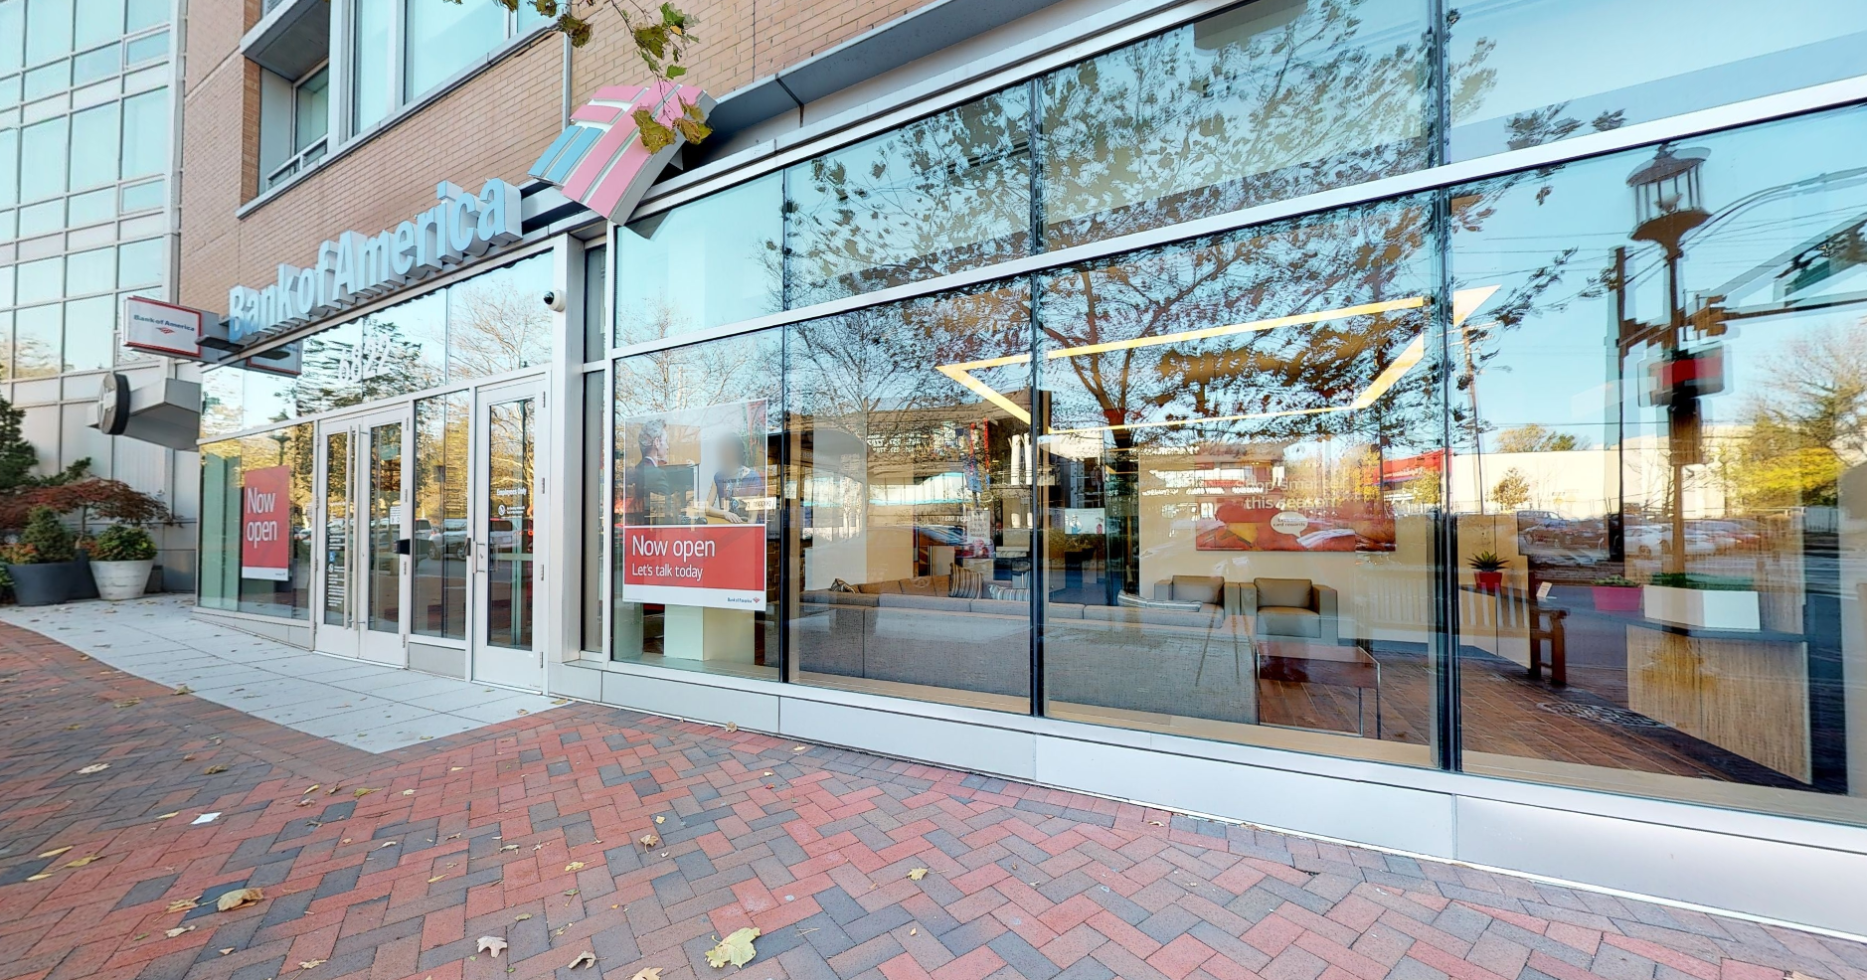 Bank of America financial center with walk-up ATM | 6822 Wisconsin Ave, Bethesda, MD 20815